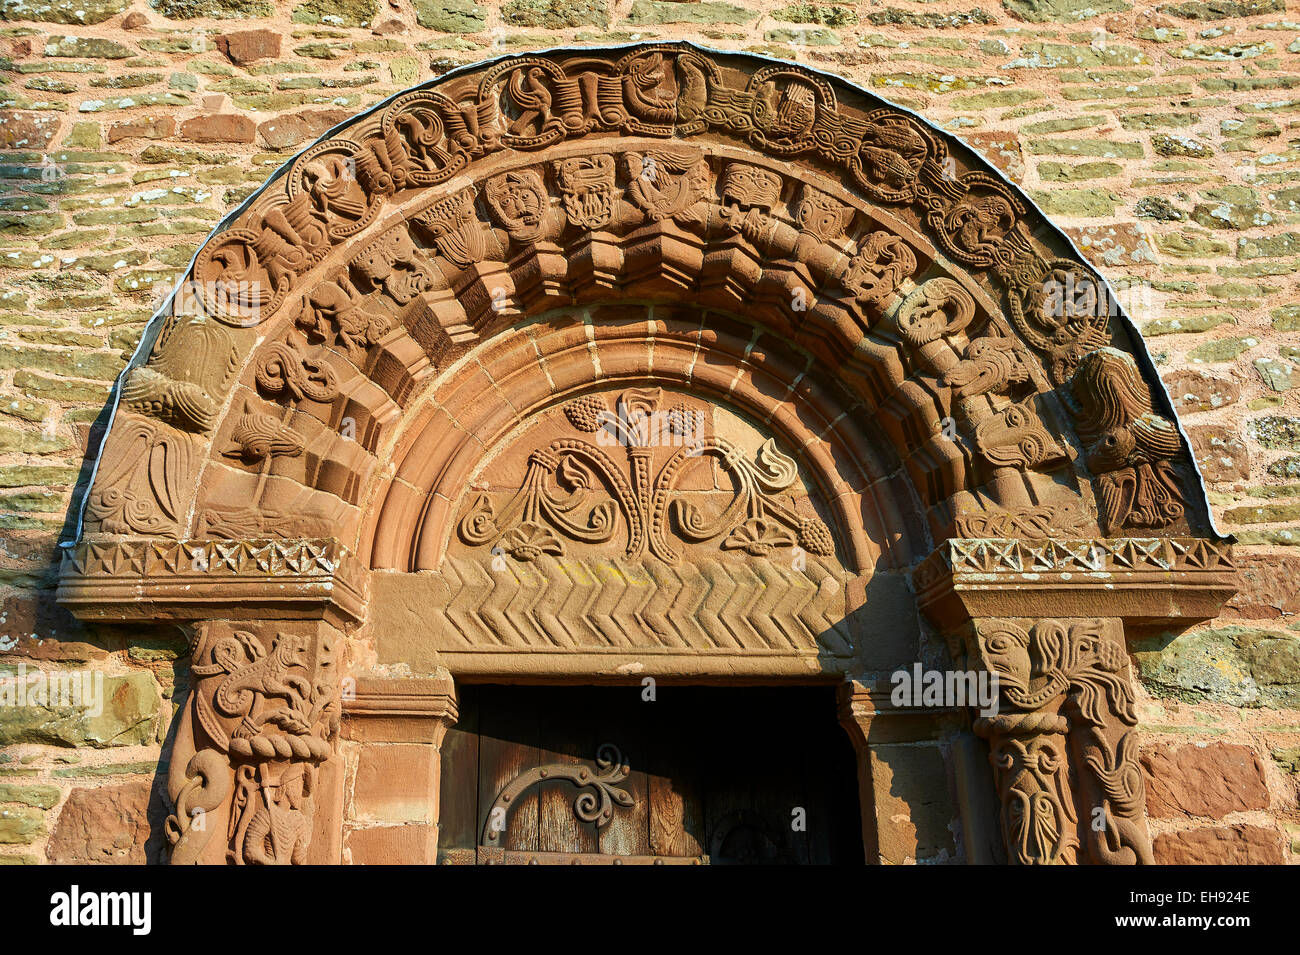 Norman Romanesque relief sculptures of dragons and mythical creatures Kilpeck Church, Herefordshire, England - Stock Image